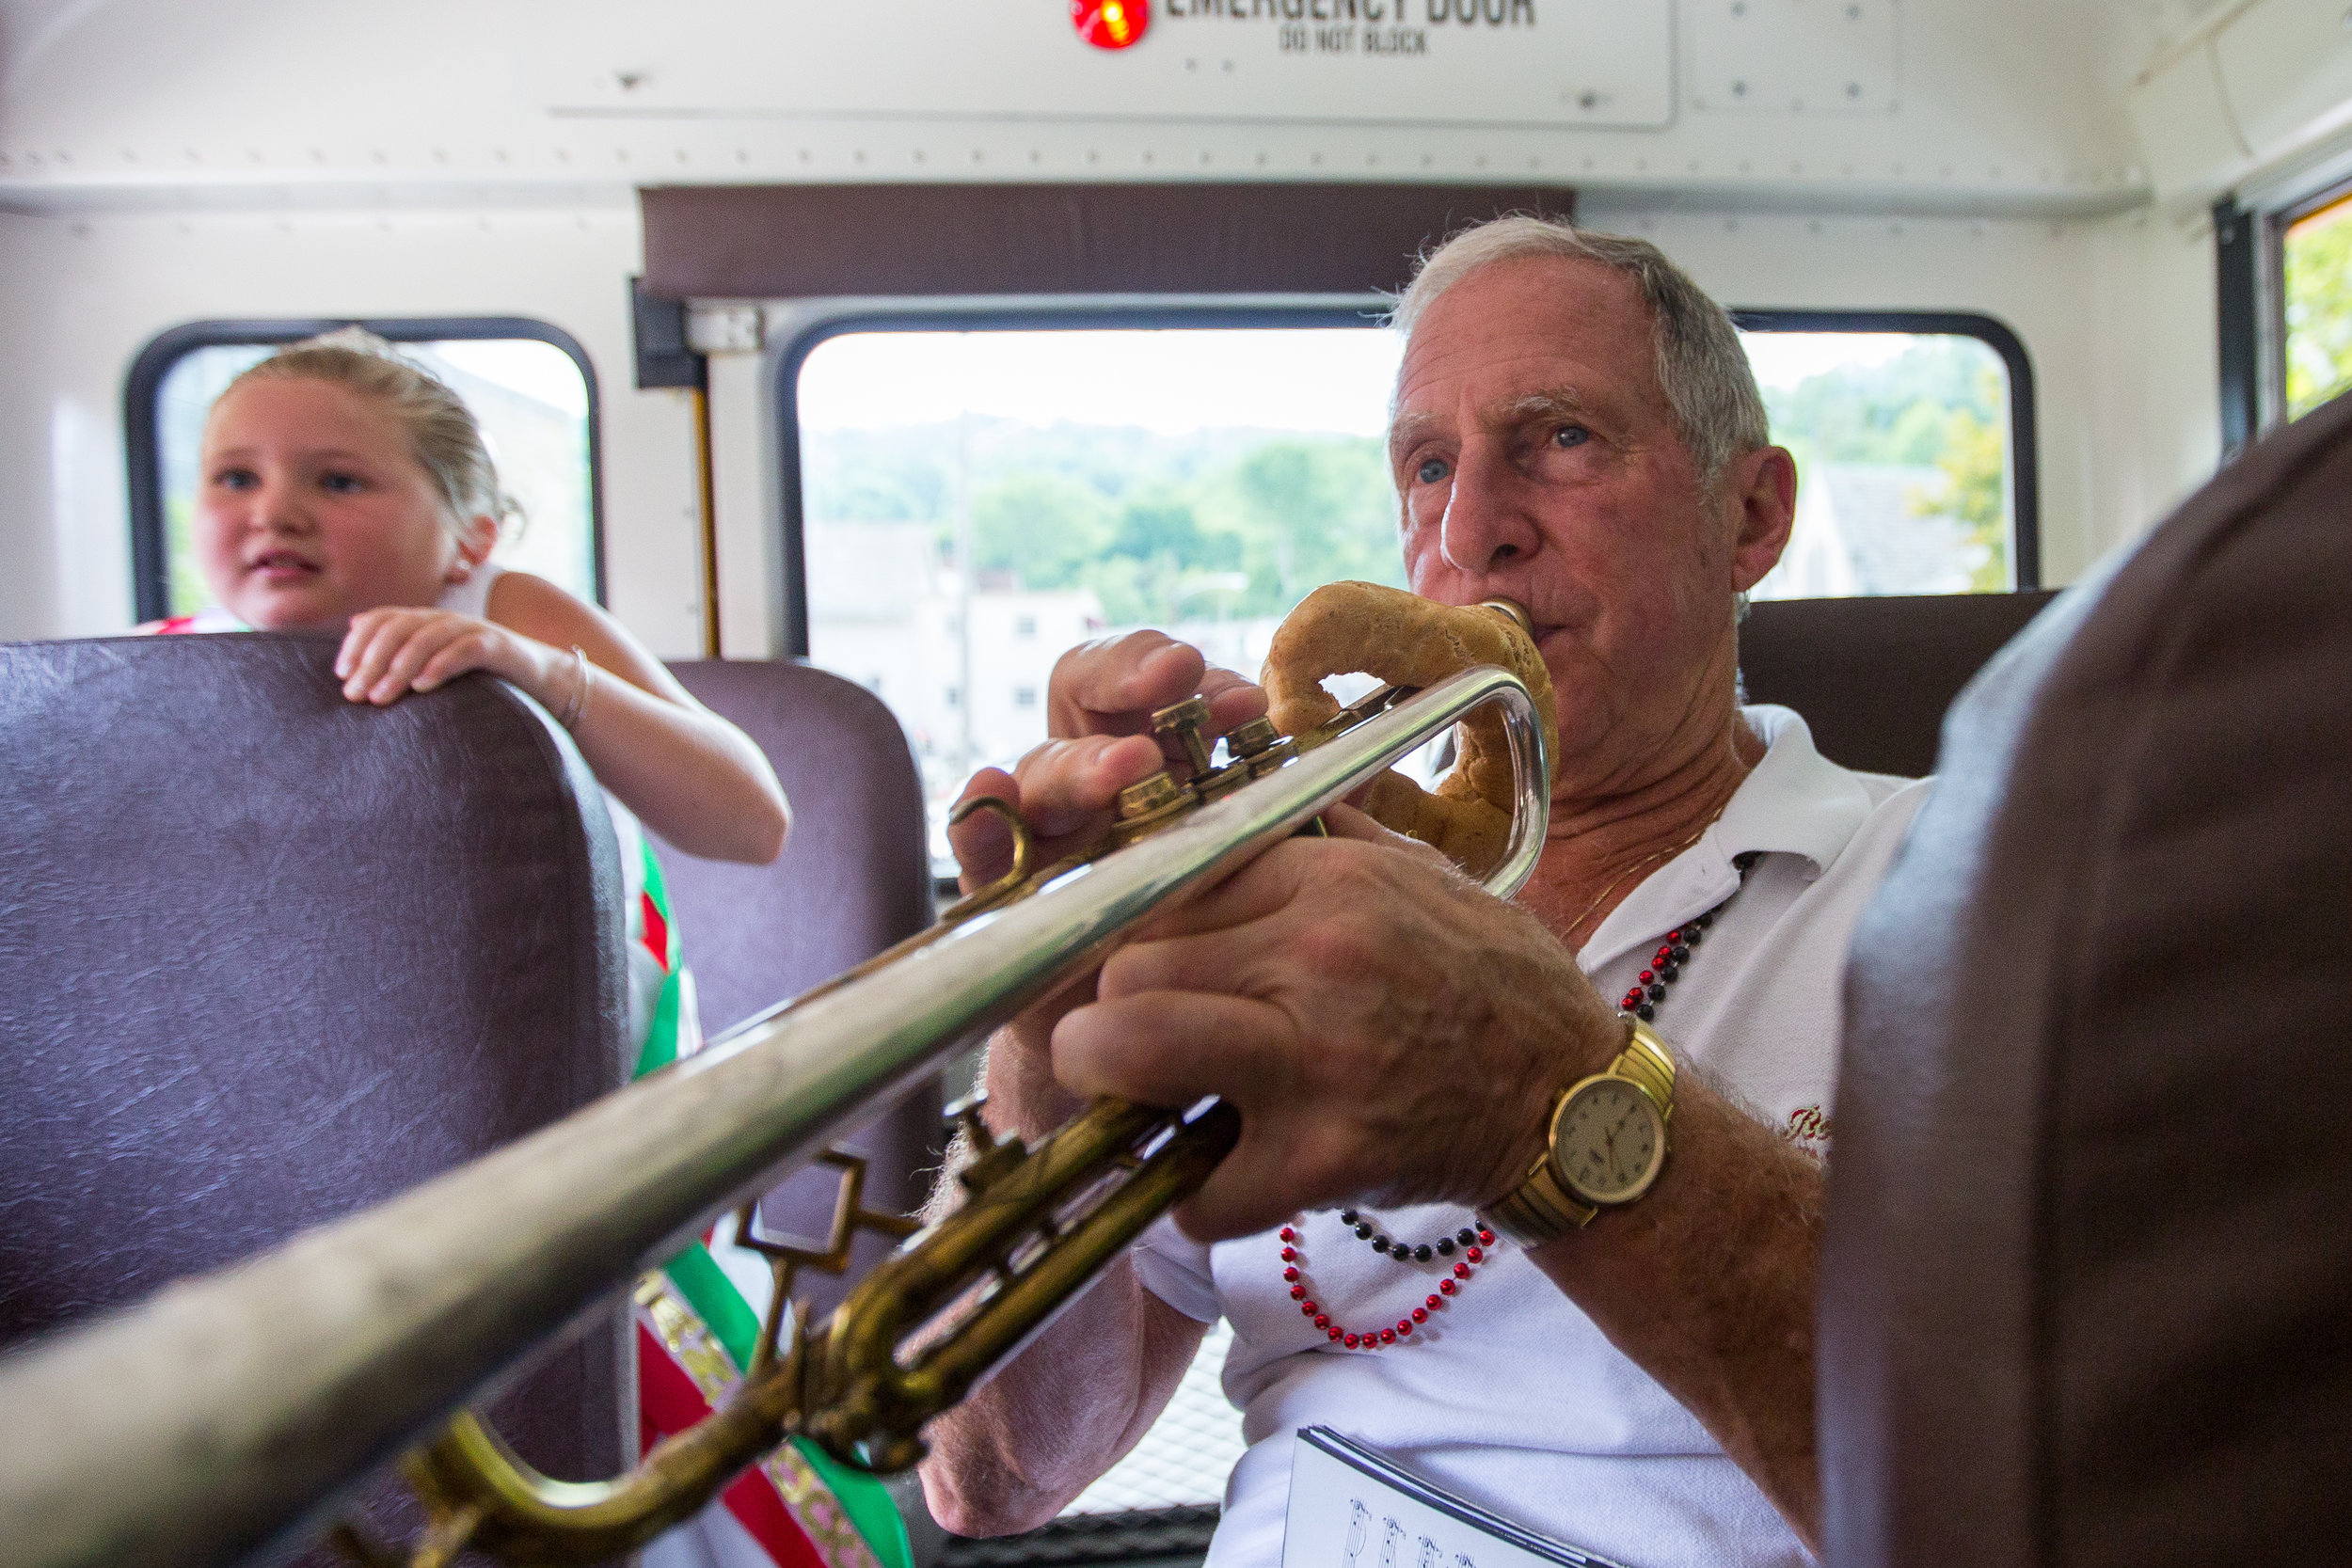 Henry Bufalini plays his trumpet in a school bus with other members of the San Rocco Festa Band as they drive from St. Titus Church to the beginning of the procession route on Sunday morning in Aliquippa. Thousands of people participated in the procession, which featured many families with family banners marching through the streets of Aliquippa with the San Rocco Festa Band and the statue of San Rocco.